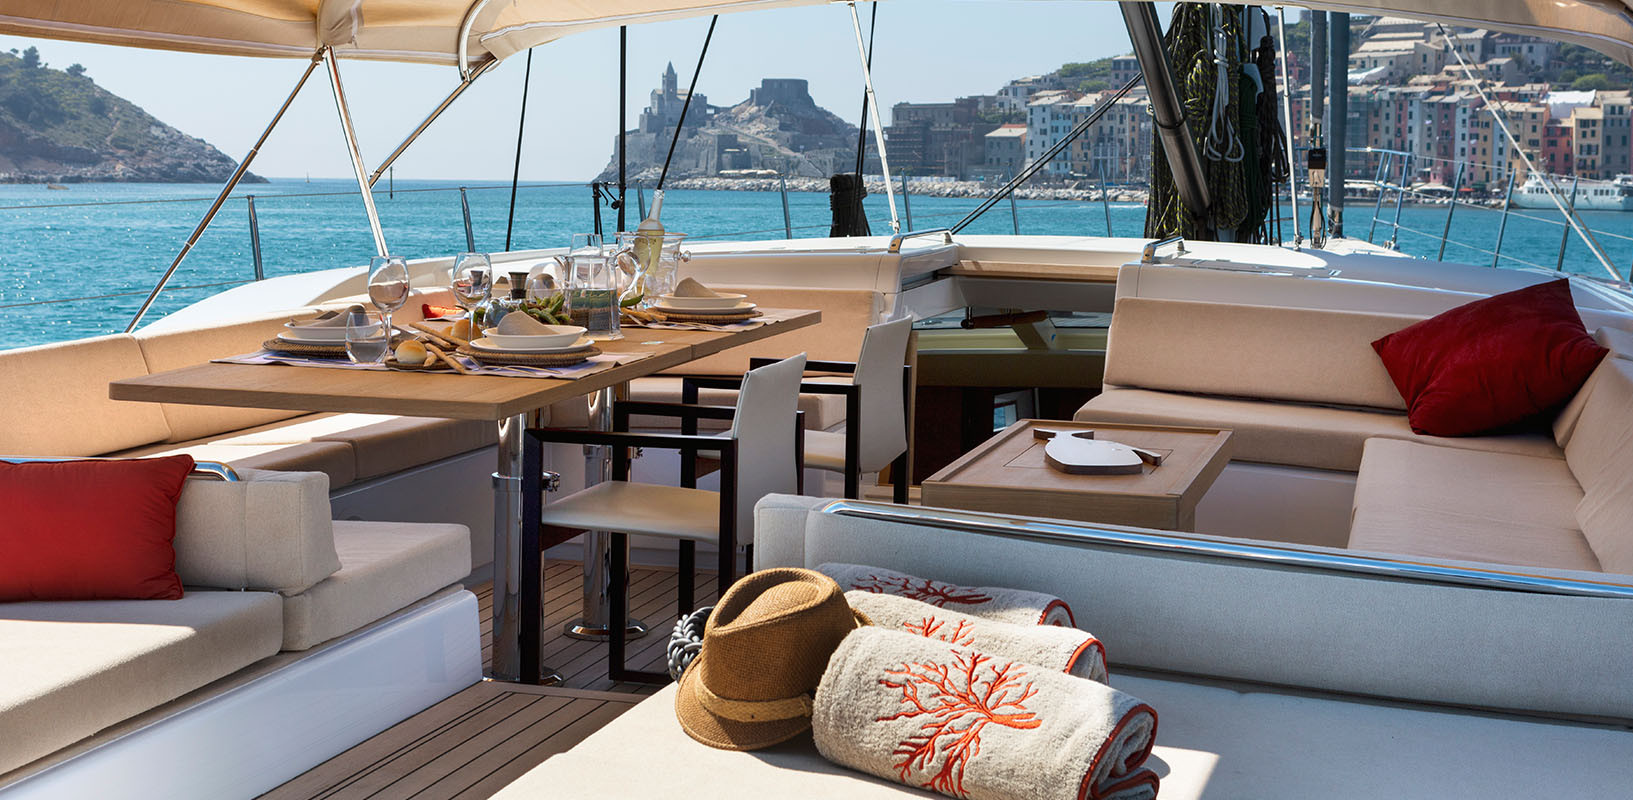 Sailing Yacht CROSSBOW - dining on deck